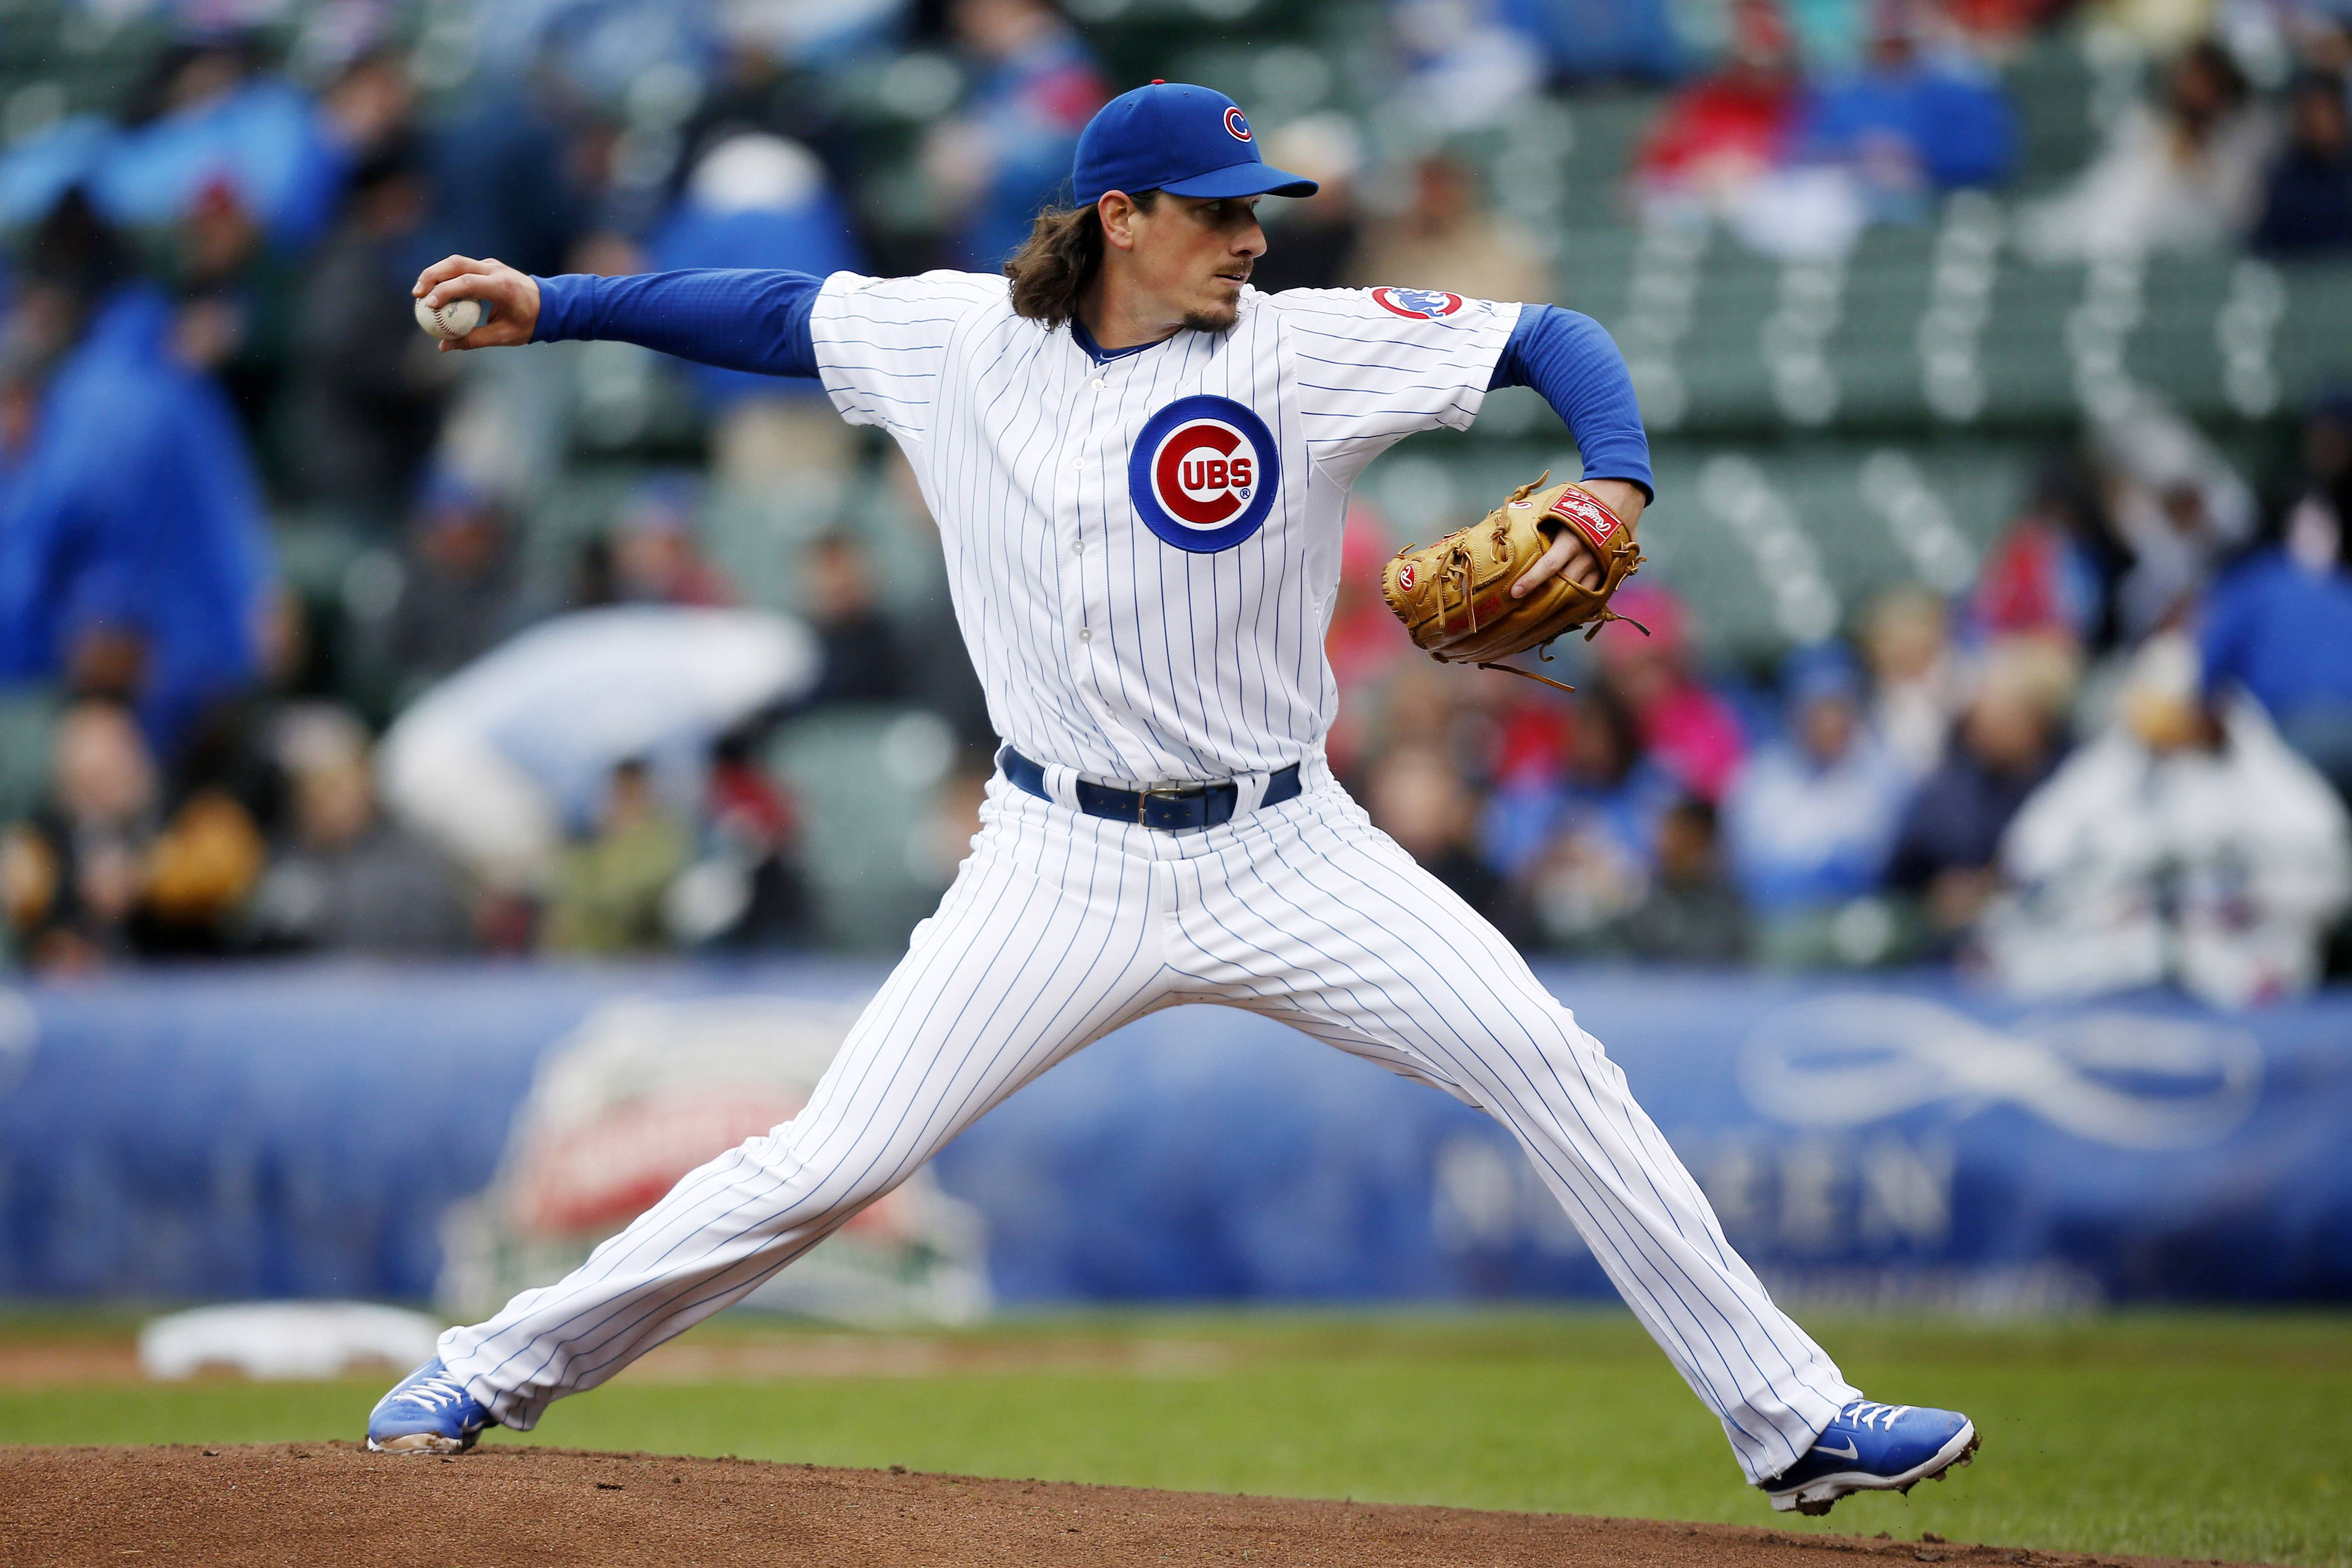 Cubs starter Jeff Samardzija allowed 4 runs Friday to the Brewers, but only 2 were earned. His record is 0-4, but he has a 1.62 ERA. He is winless in his last 15 starts dating to Aug. 30 last year.